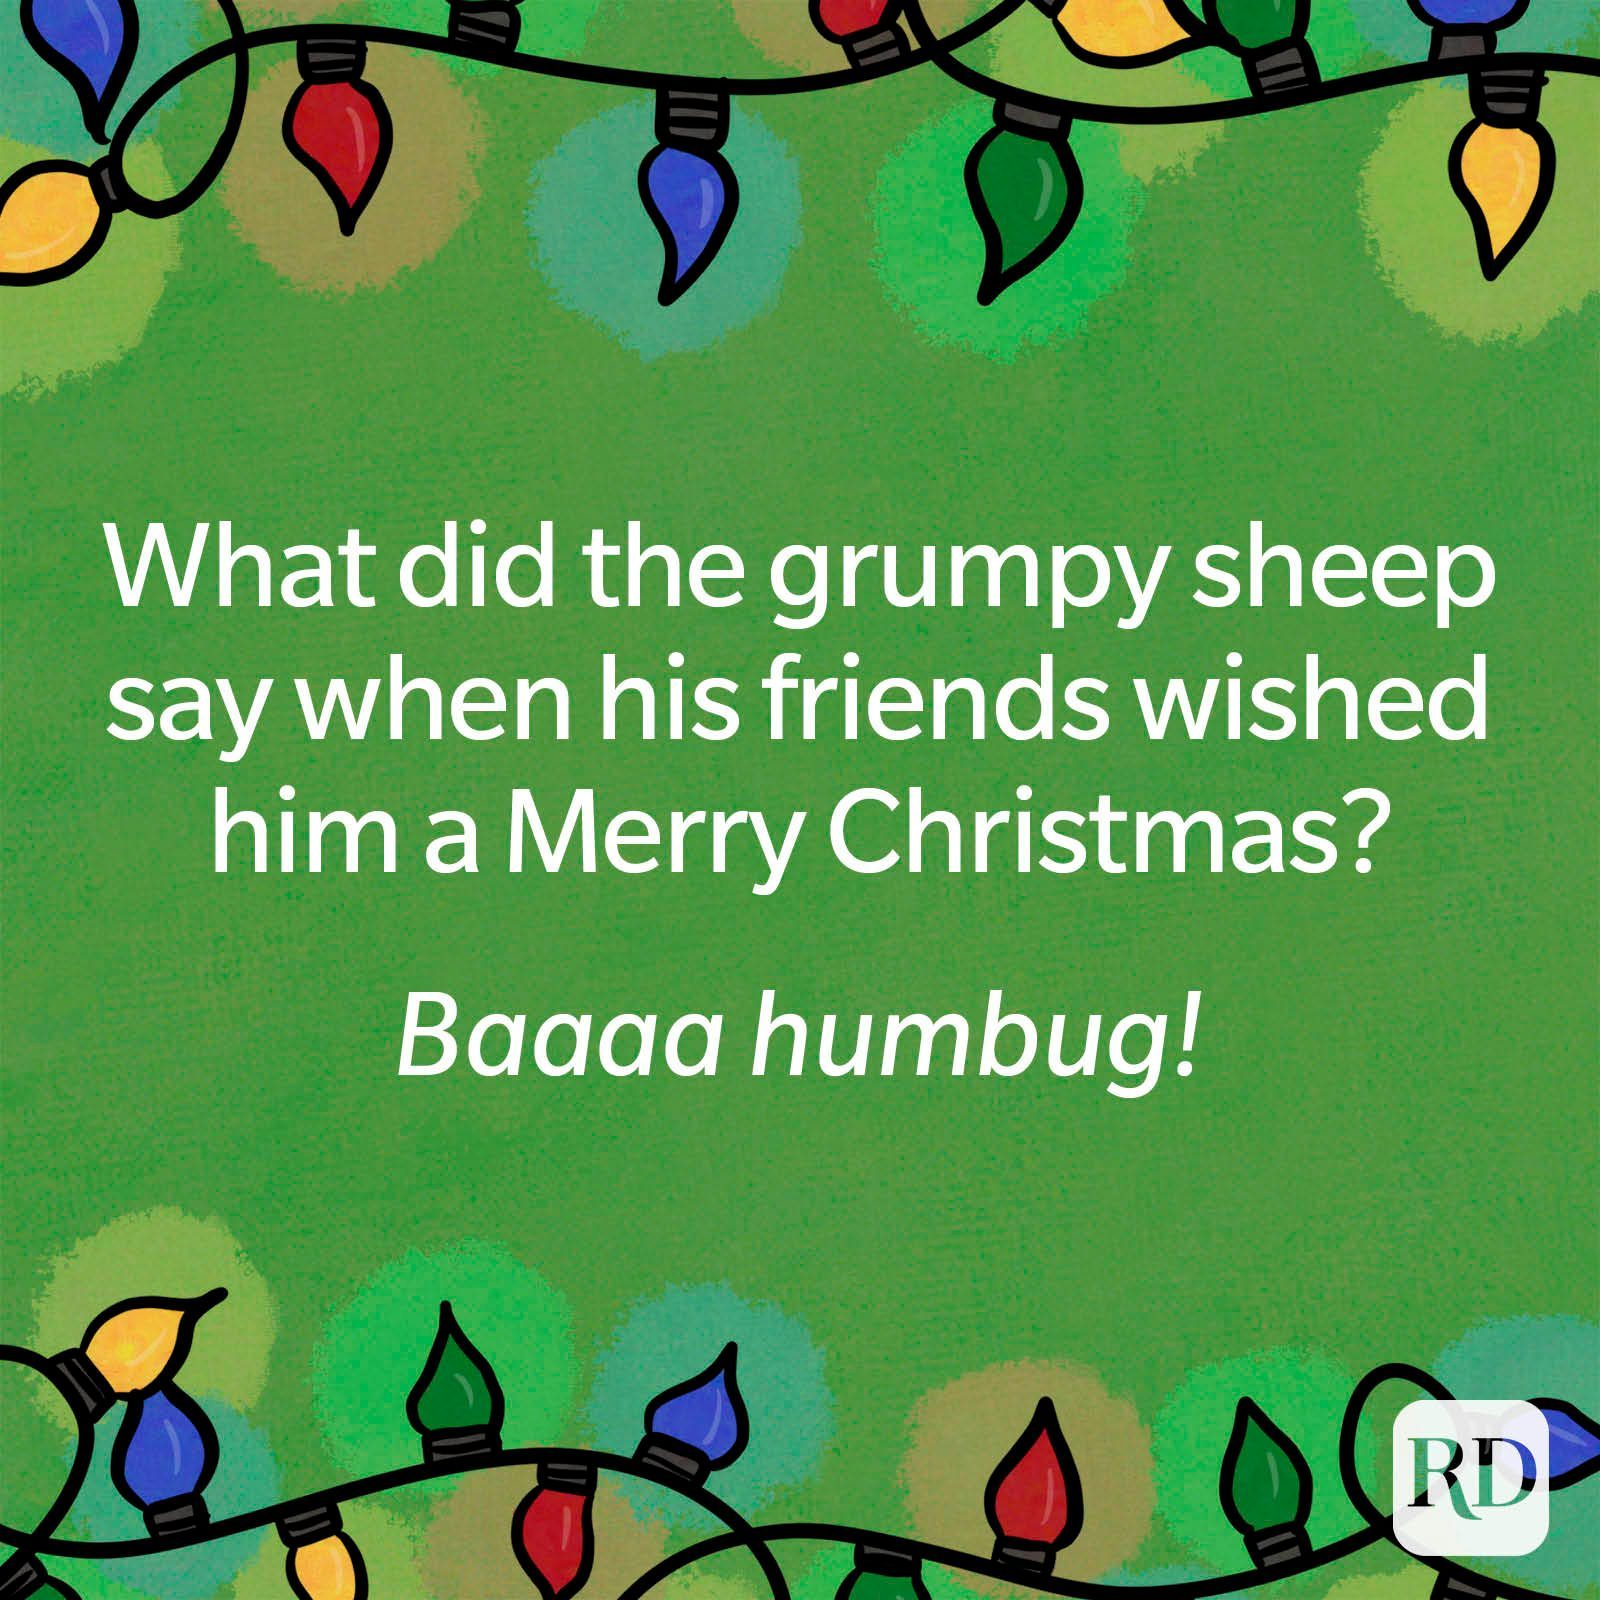 What did the grumpy sheep say when his friends wished him a Merry Christmas?